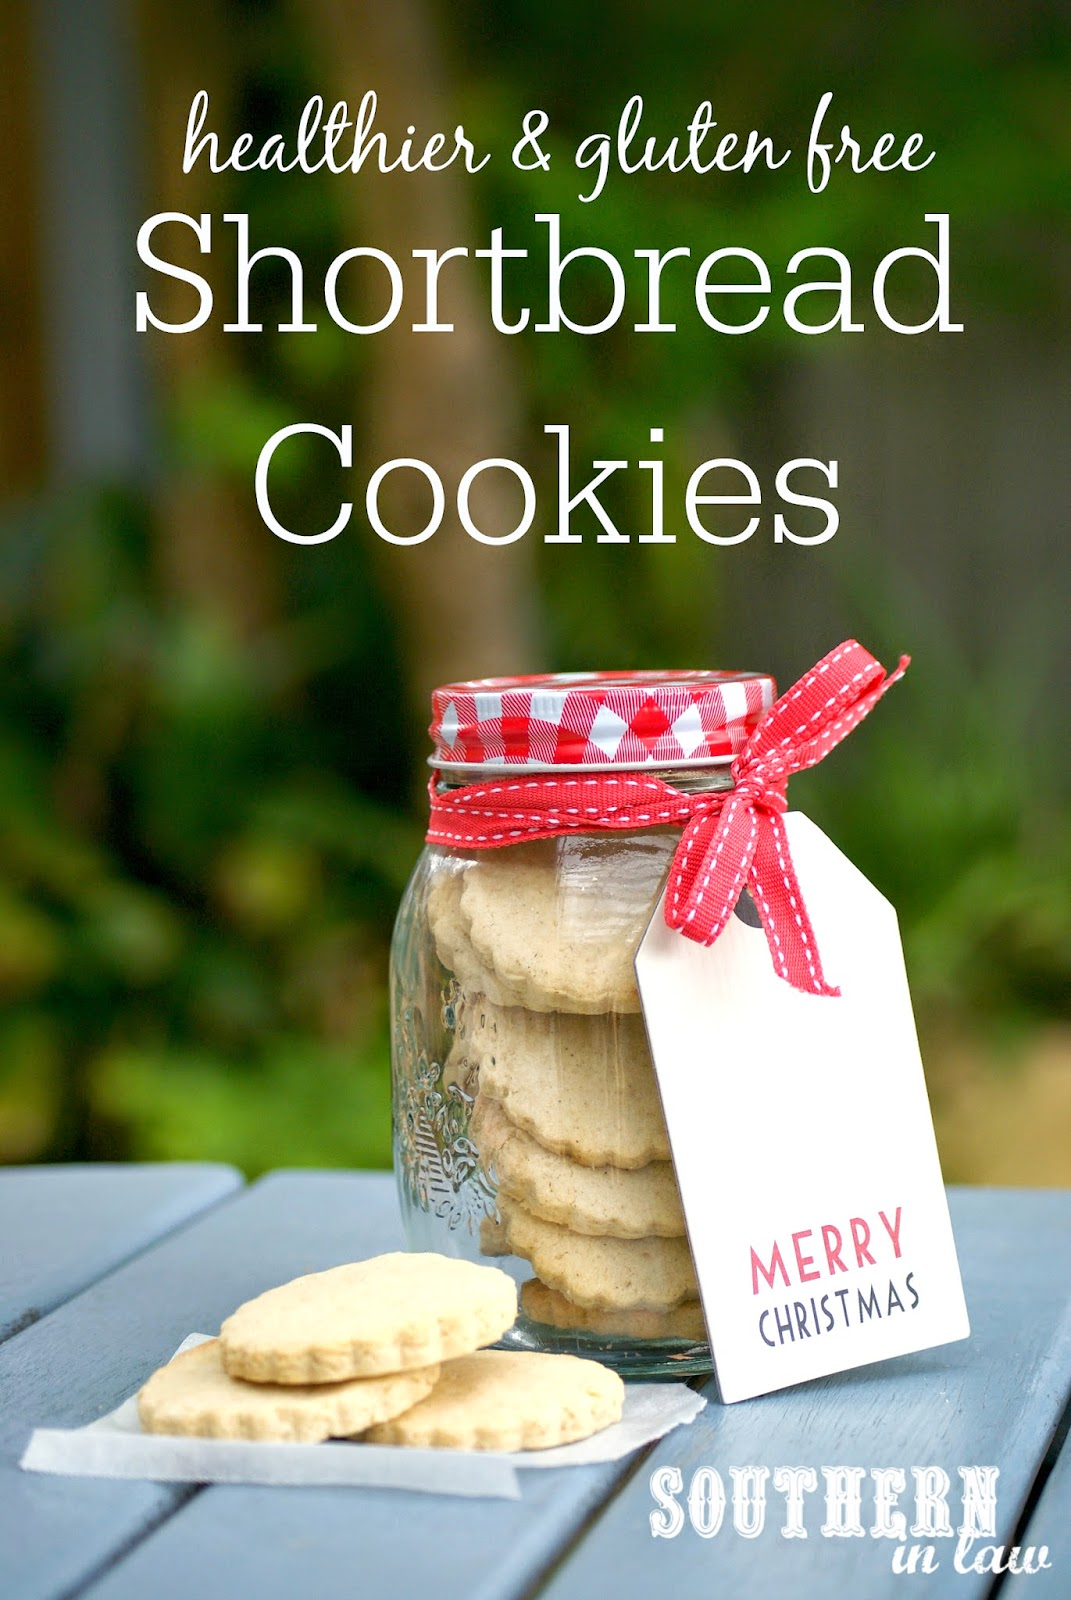 Healthier Gluten Free Shortbread Cookies Recipe for Christmas - low fat, low sugar, gluten free, healthier, healthy christmas recipes